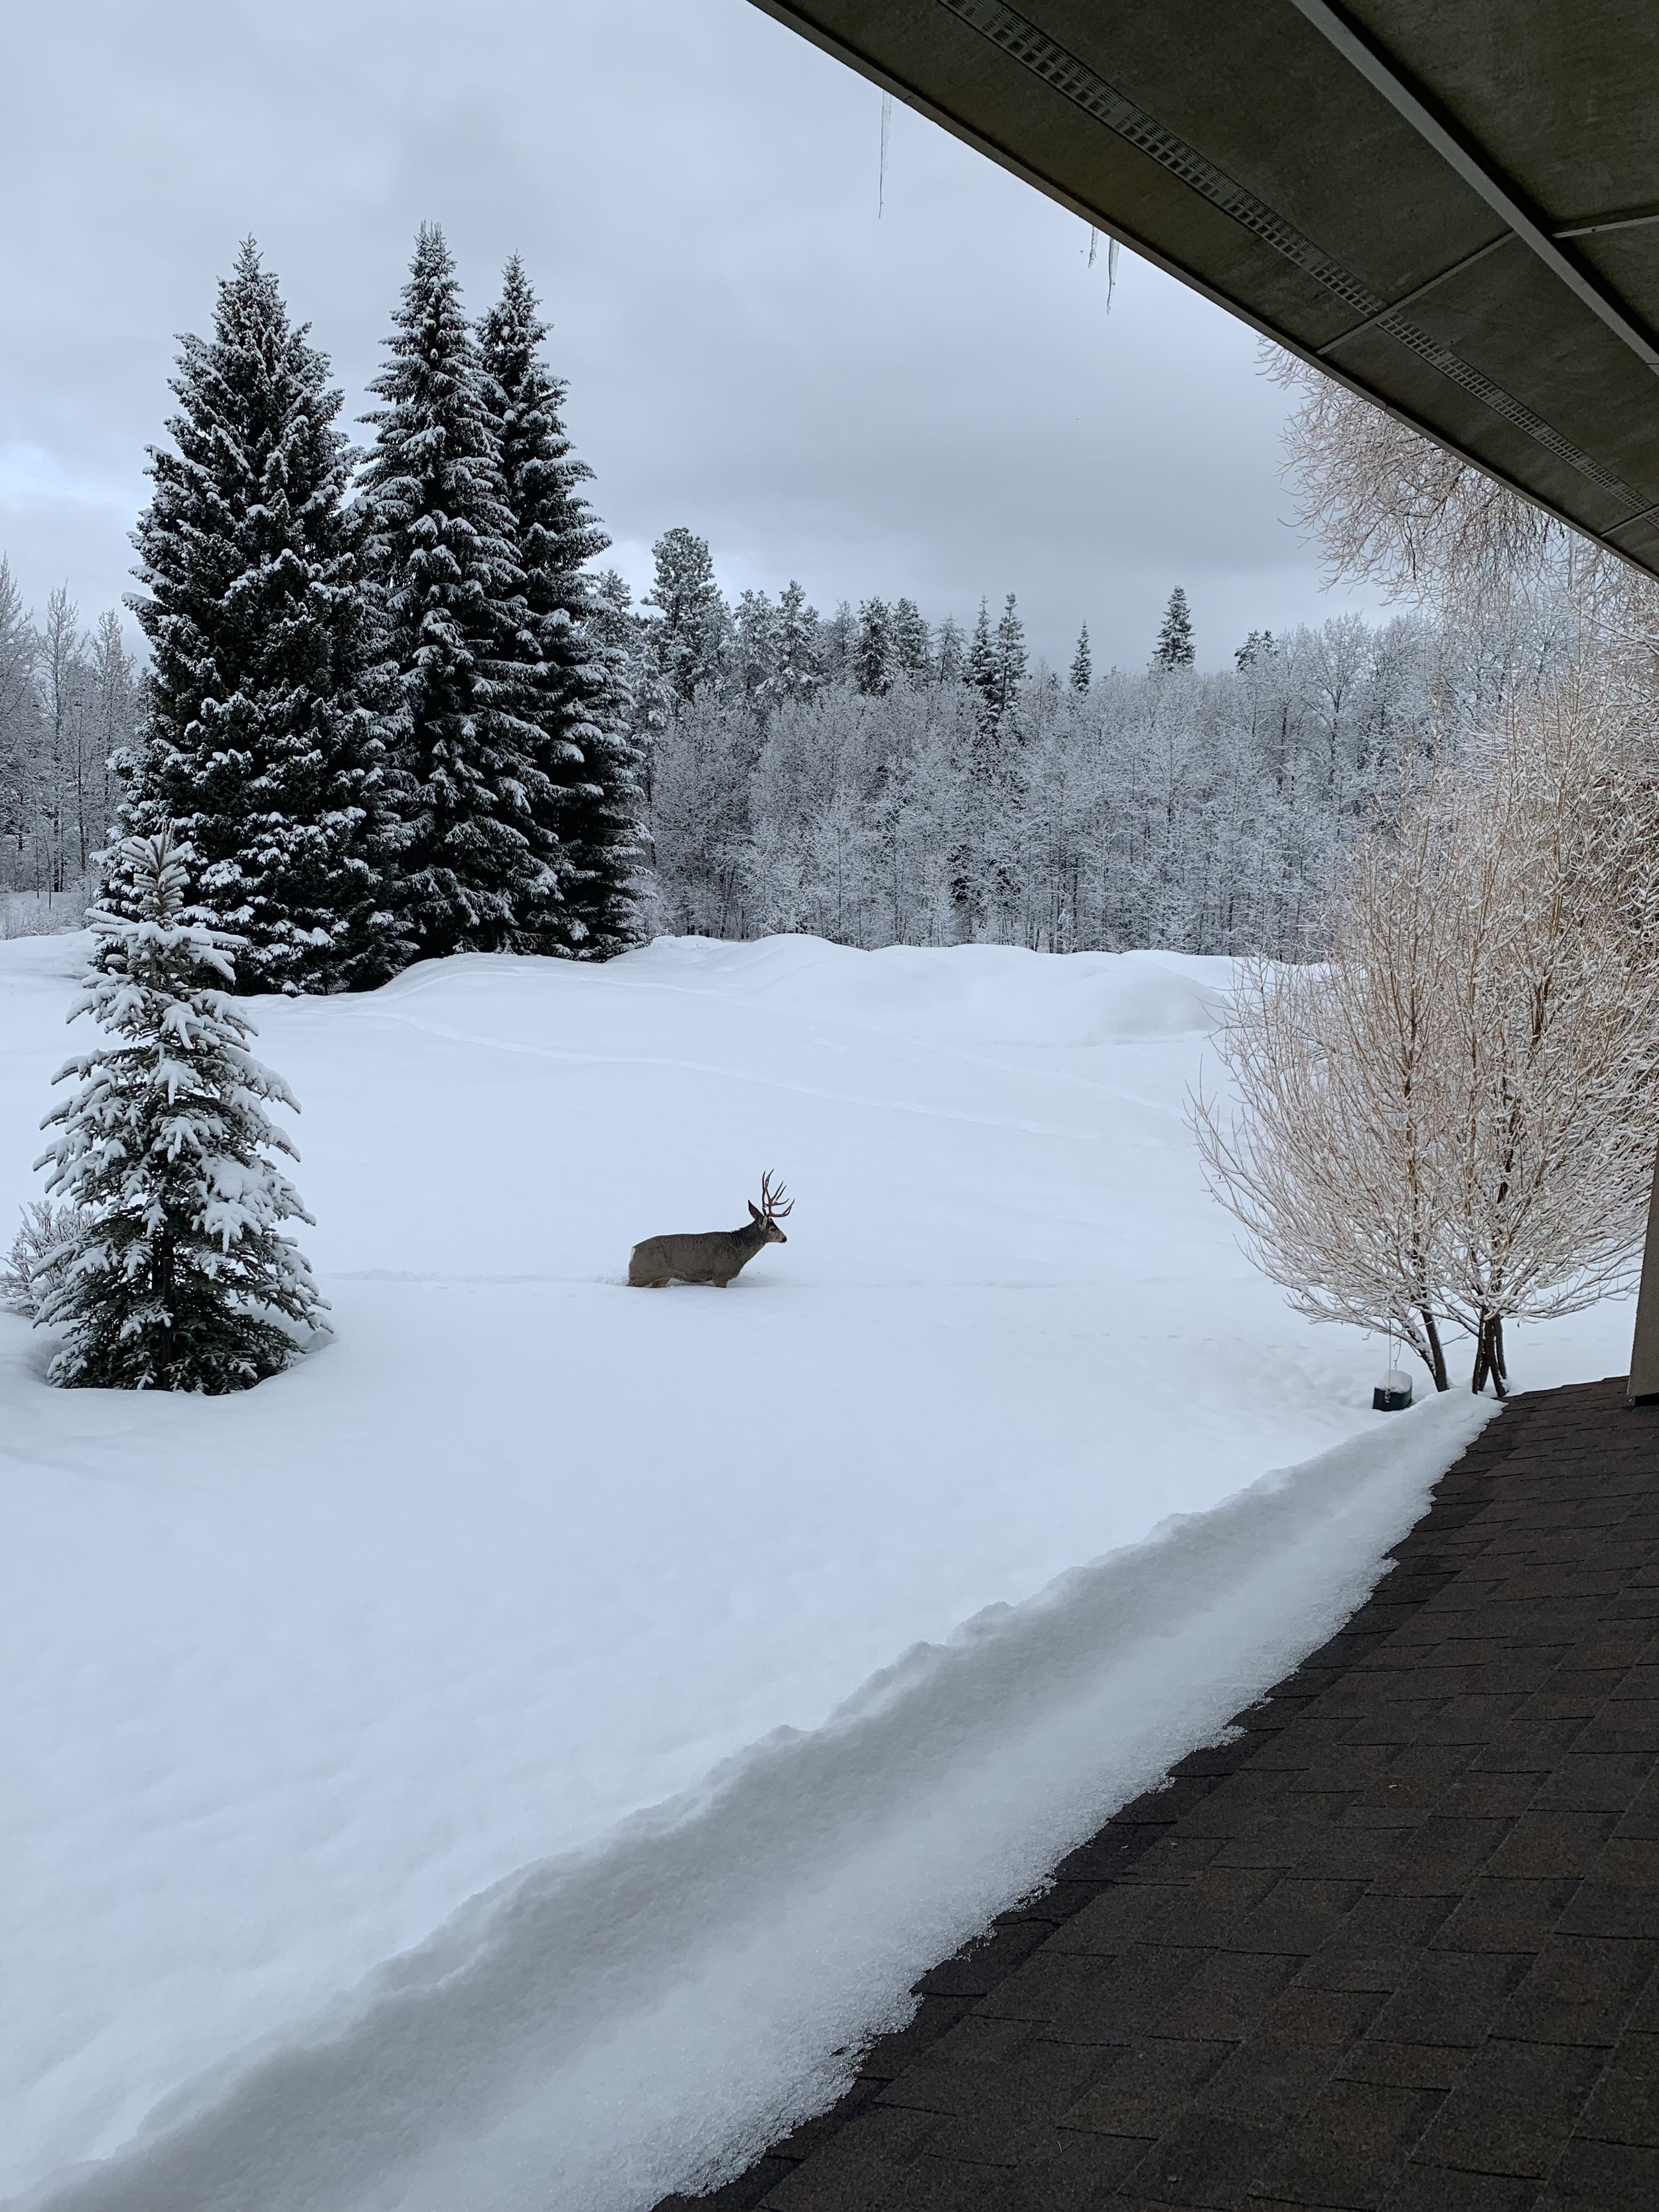 Jared Montague often sees wildlife wherever he is in McCall. Recently, he and his son spotted a moose during a bike ride.  Photo courtesy of Greg Spencer